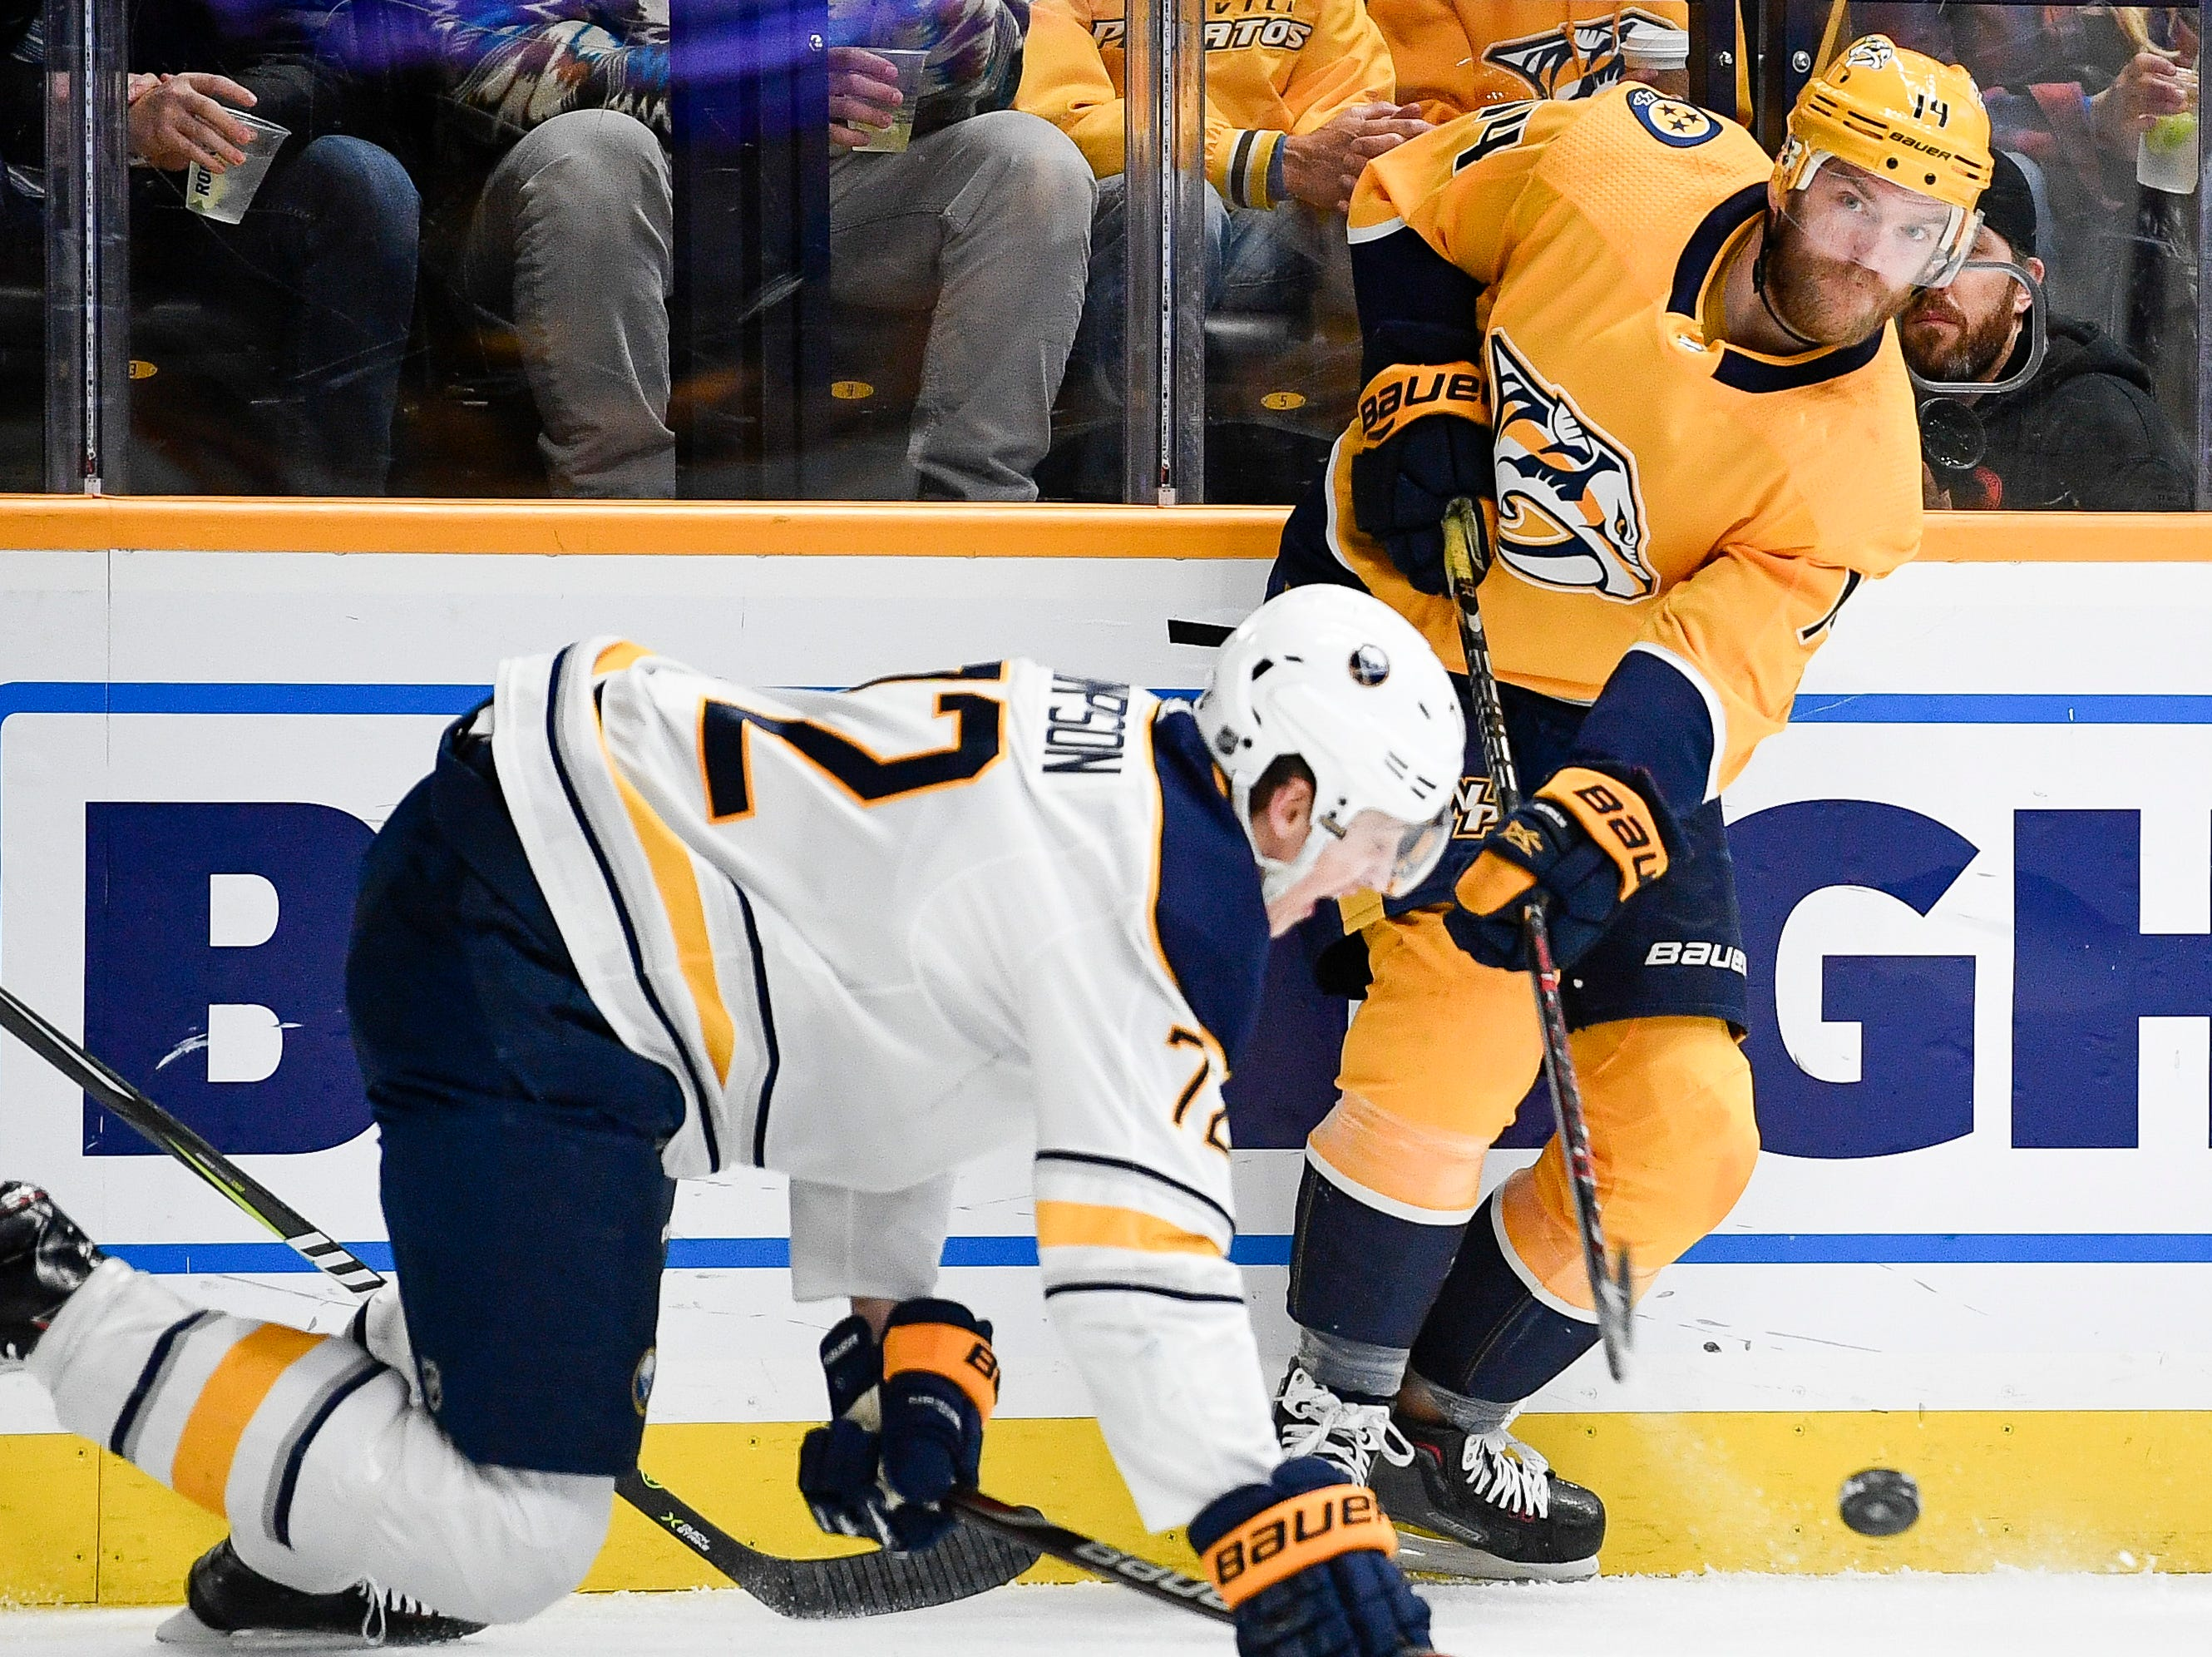 Nashville Predators defenseman Mattias Ekholm (14) passes past Buffalo Sabres right wing Tage Thompson (72) during the first period at Bridgestone Arena in Nashville, Tenn., Monday, Dec. 3, 2018.